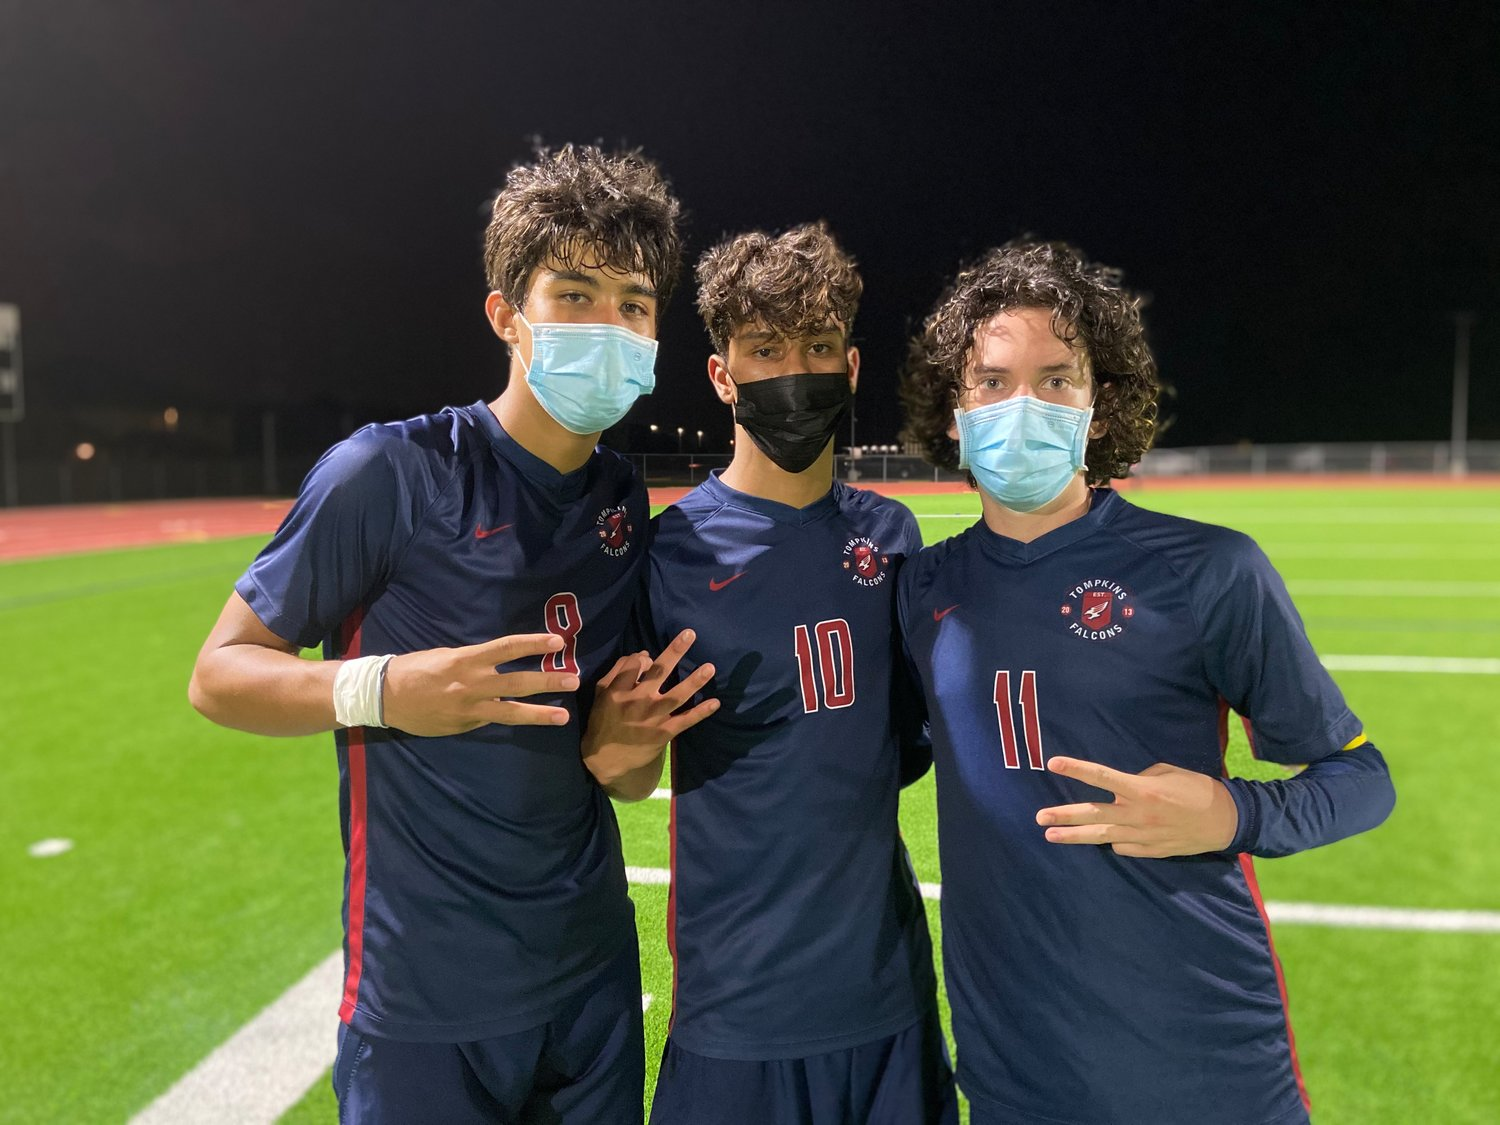 From left to right, Tompkins junior midfielder Rafa Gonzales, sophomore midfielder Luis Lugo and senior midfielder Jose Ojeda lifted the Falcons to a 4-2 Class 6A area playoff win over Cy-Fair on Tuesday, March 30, at Jordan High School.